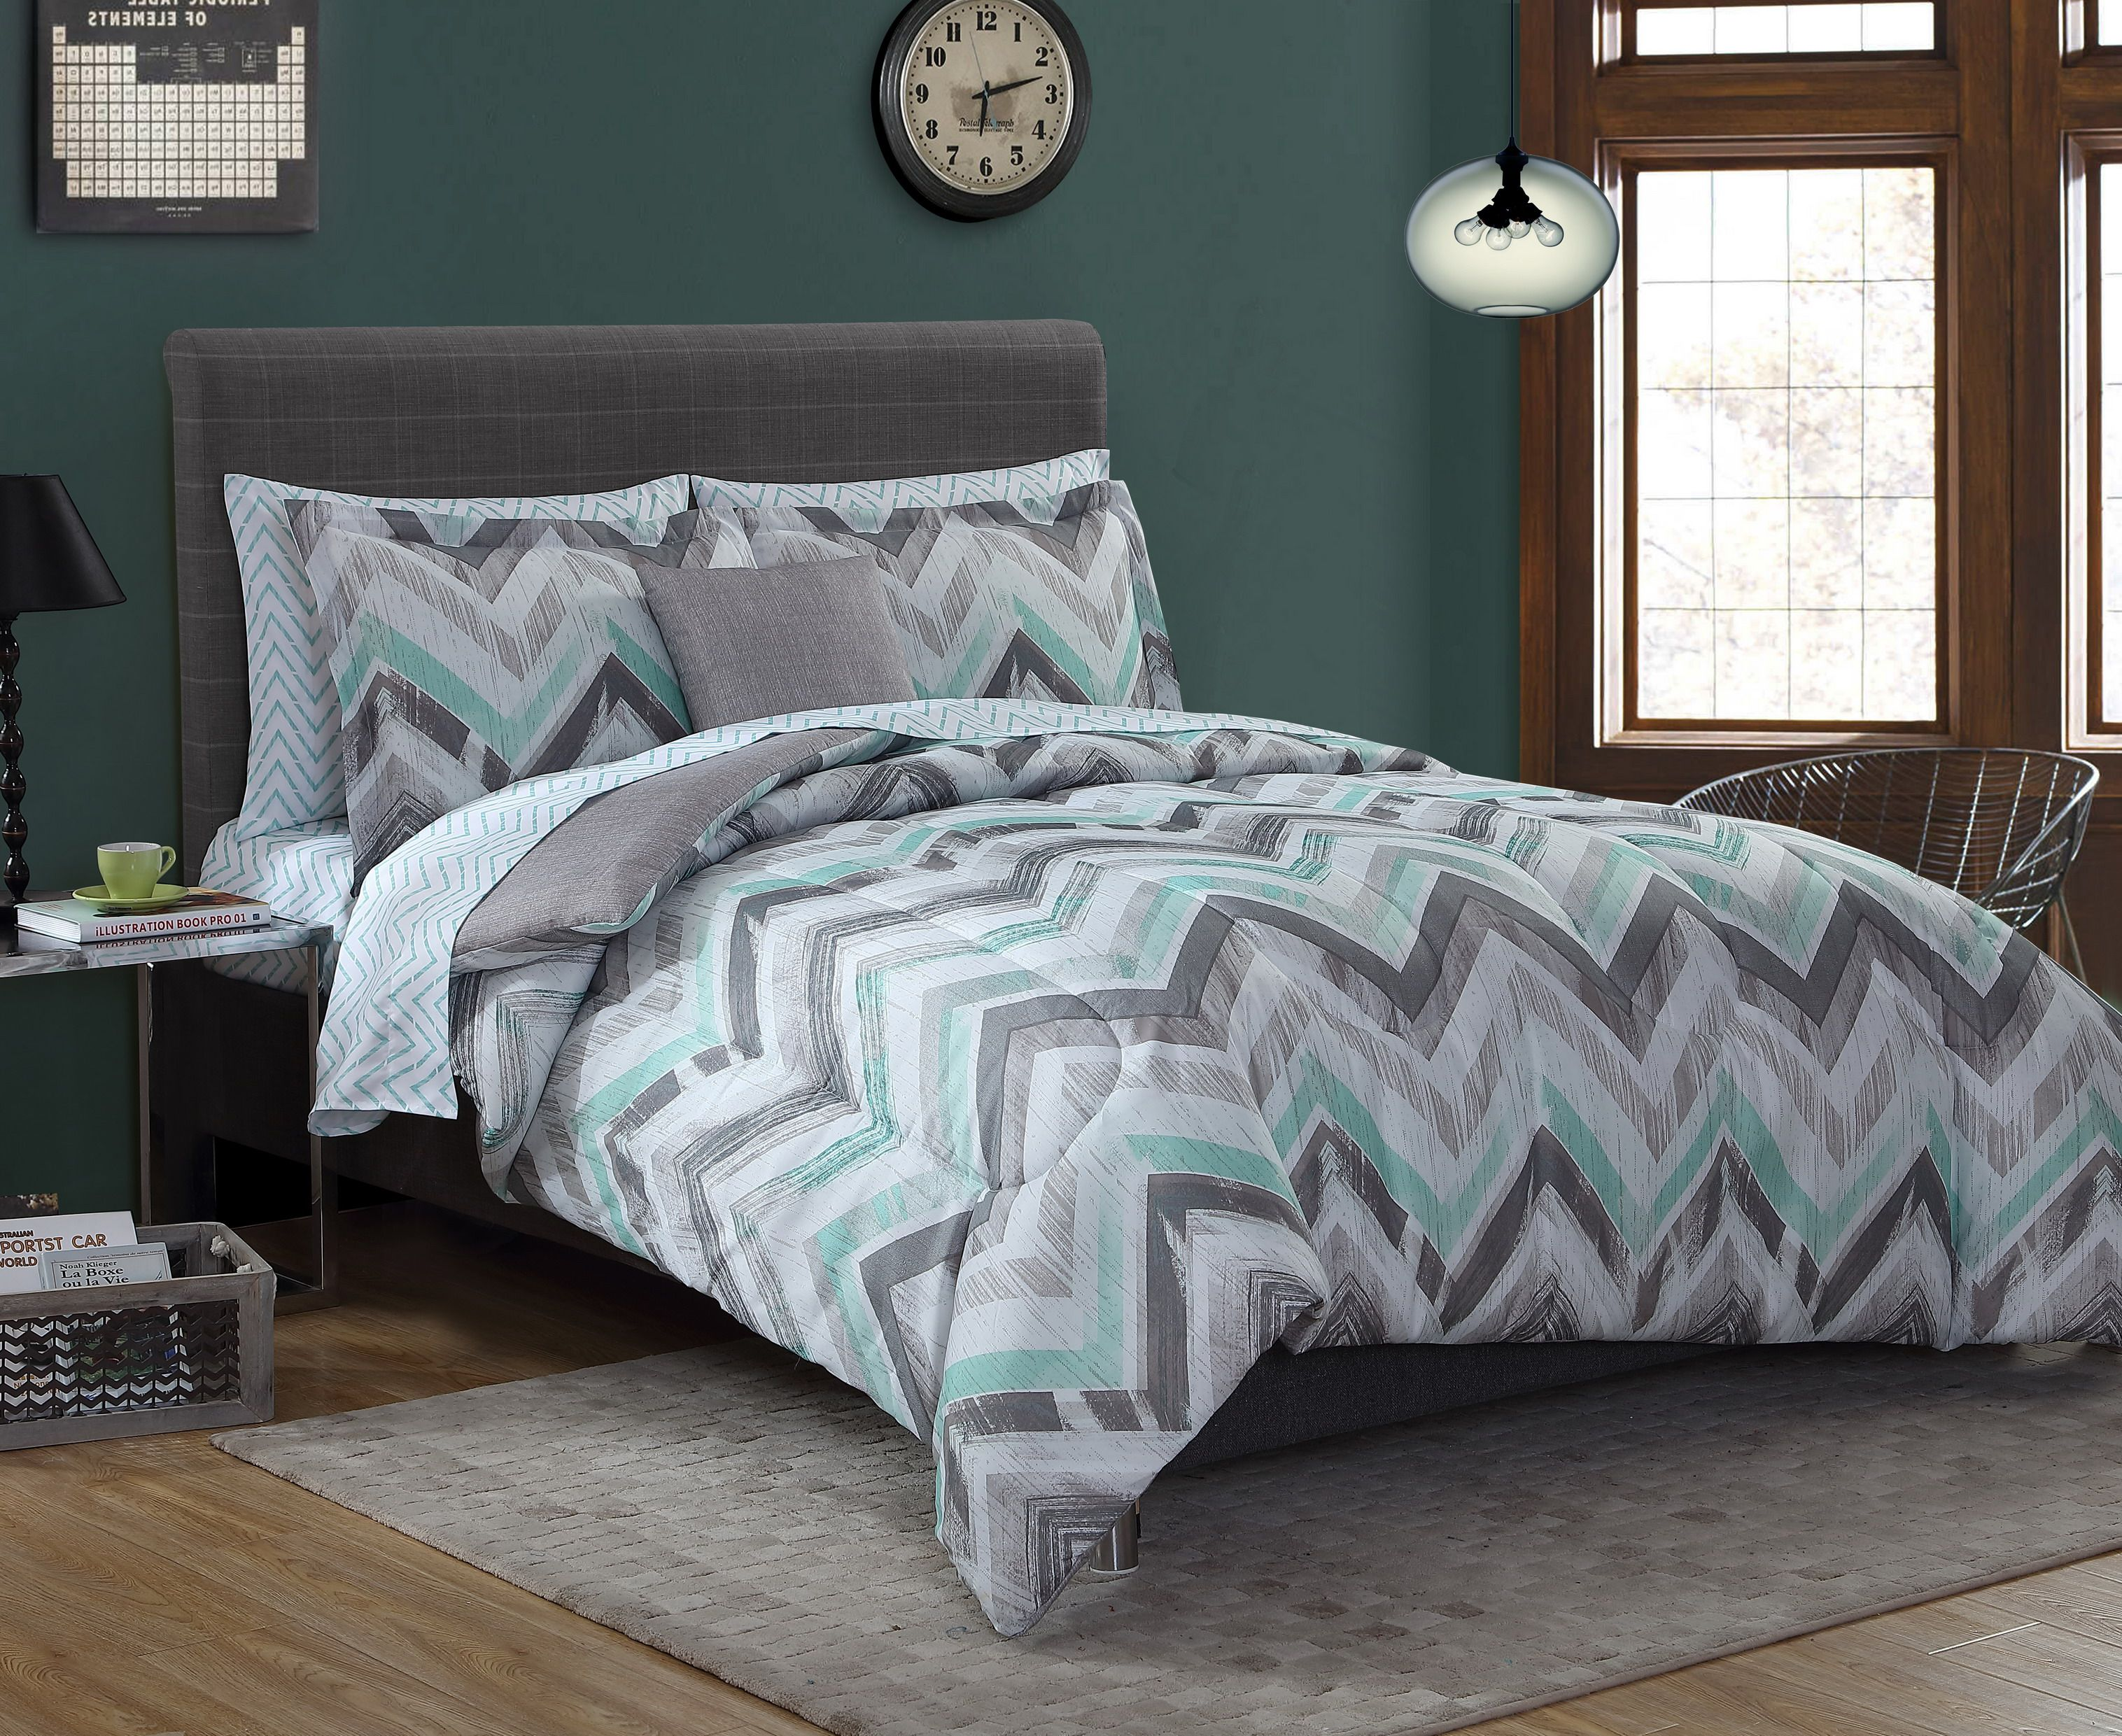 Essential Home Complete Bed Set Chevrongray Mint Green Bed Linens Luxury Bedding Sets Teal Bedding Sets